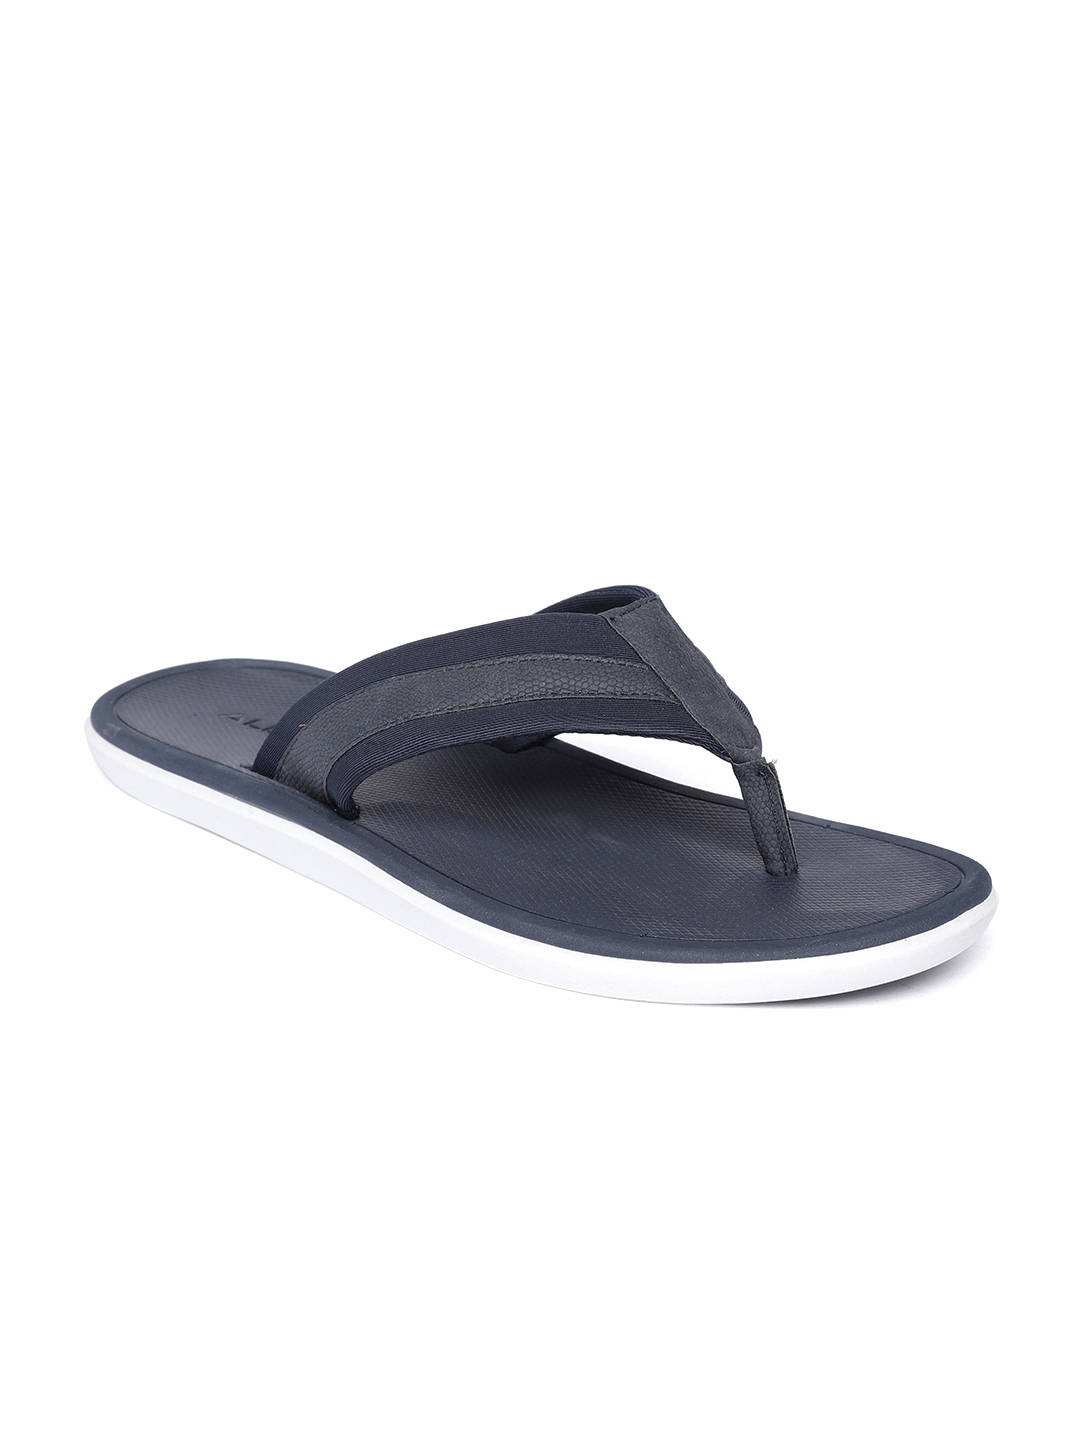 65c40e9d75f Buy ALDO Men Navy Blue Solid Thong Flip Flops - Flip Flops for Men ...